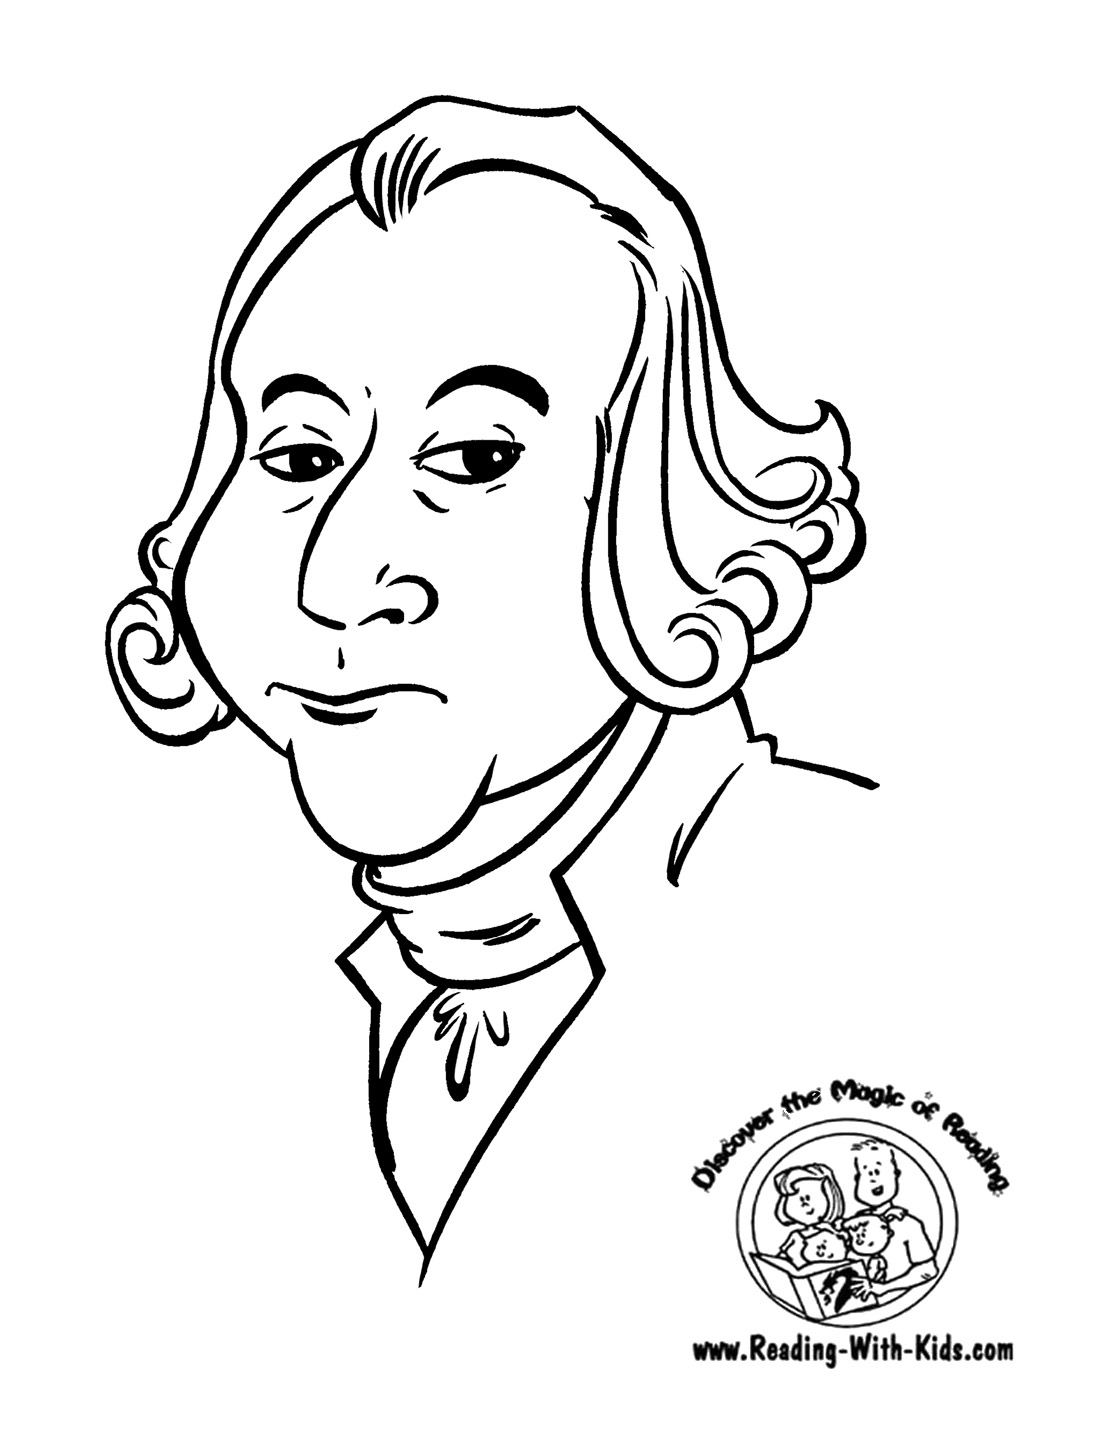 George Washington Crossing The Delaware Coloring Page George Washington Coloring Page